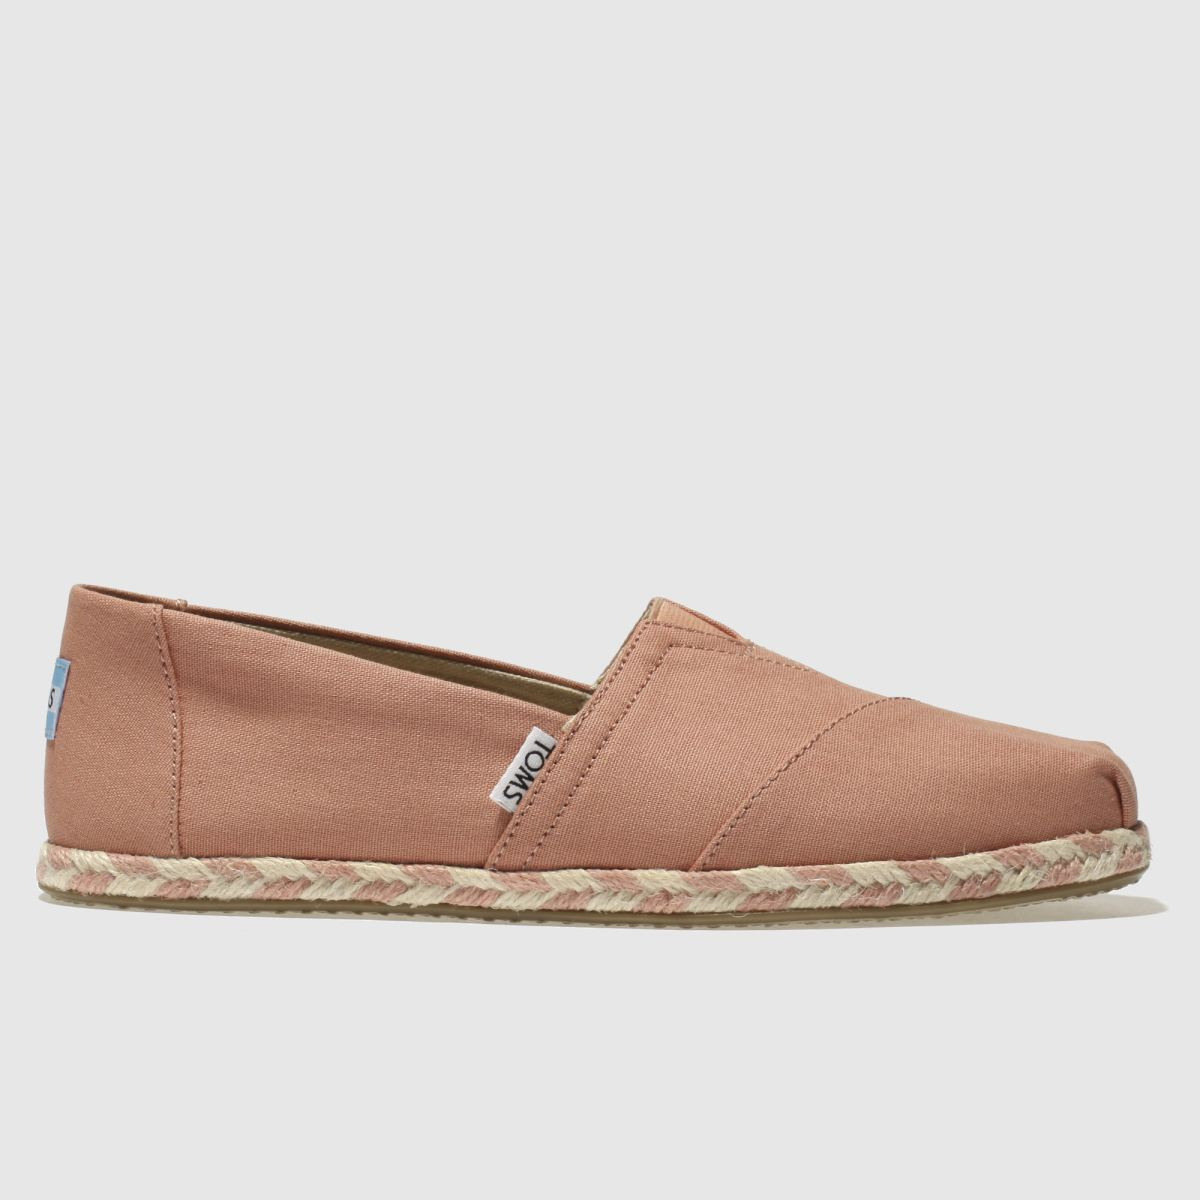 Toms Pale Pink Classic Slip Rope Sole Flat Shoes